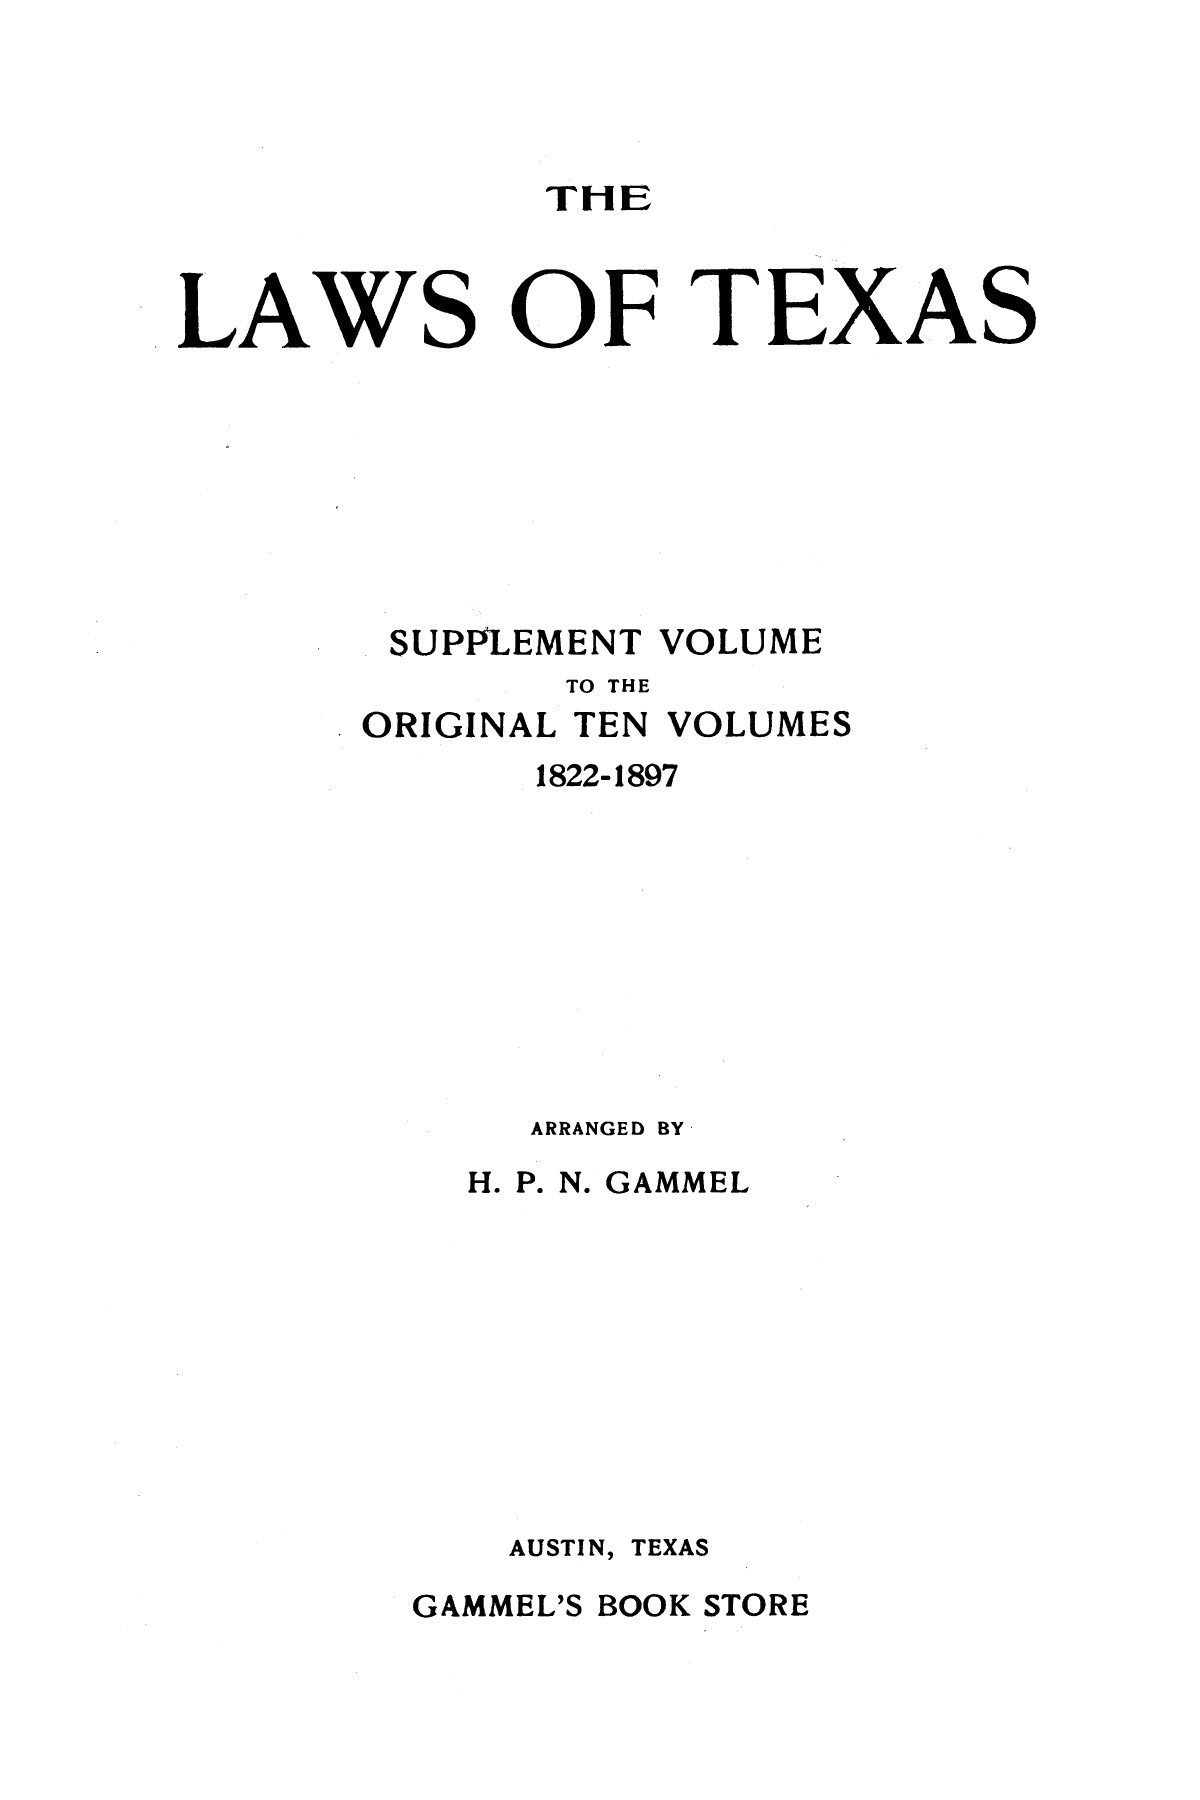 The Laws of Texas, 1913-1914 [Volume 16]                                                                                                      [Sequence #]: 1 of 1574